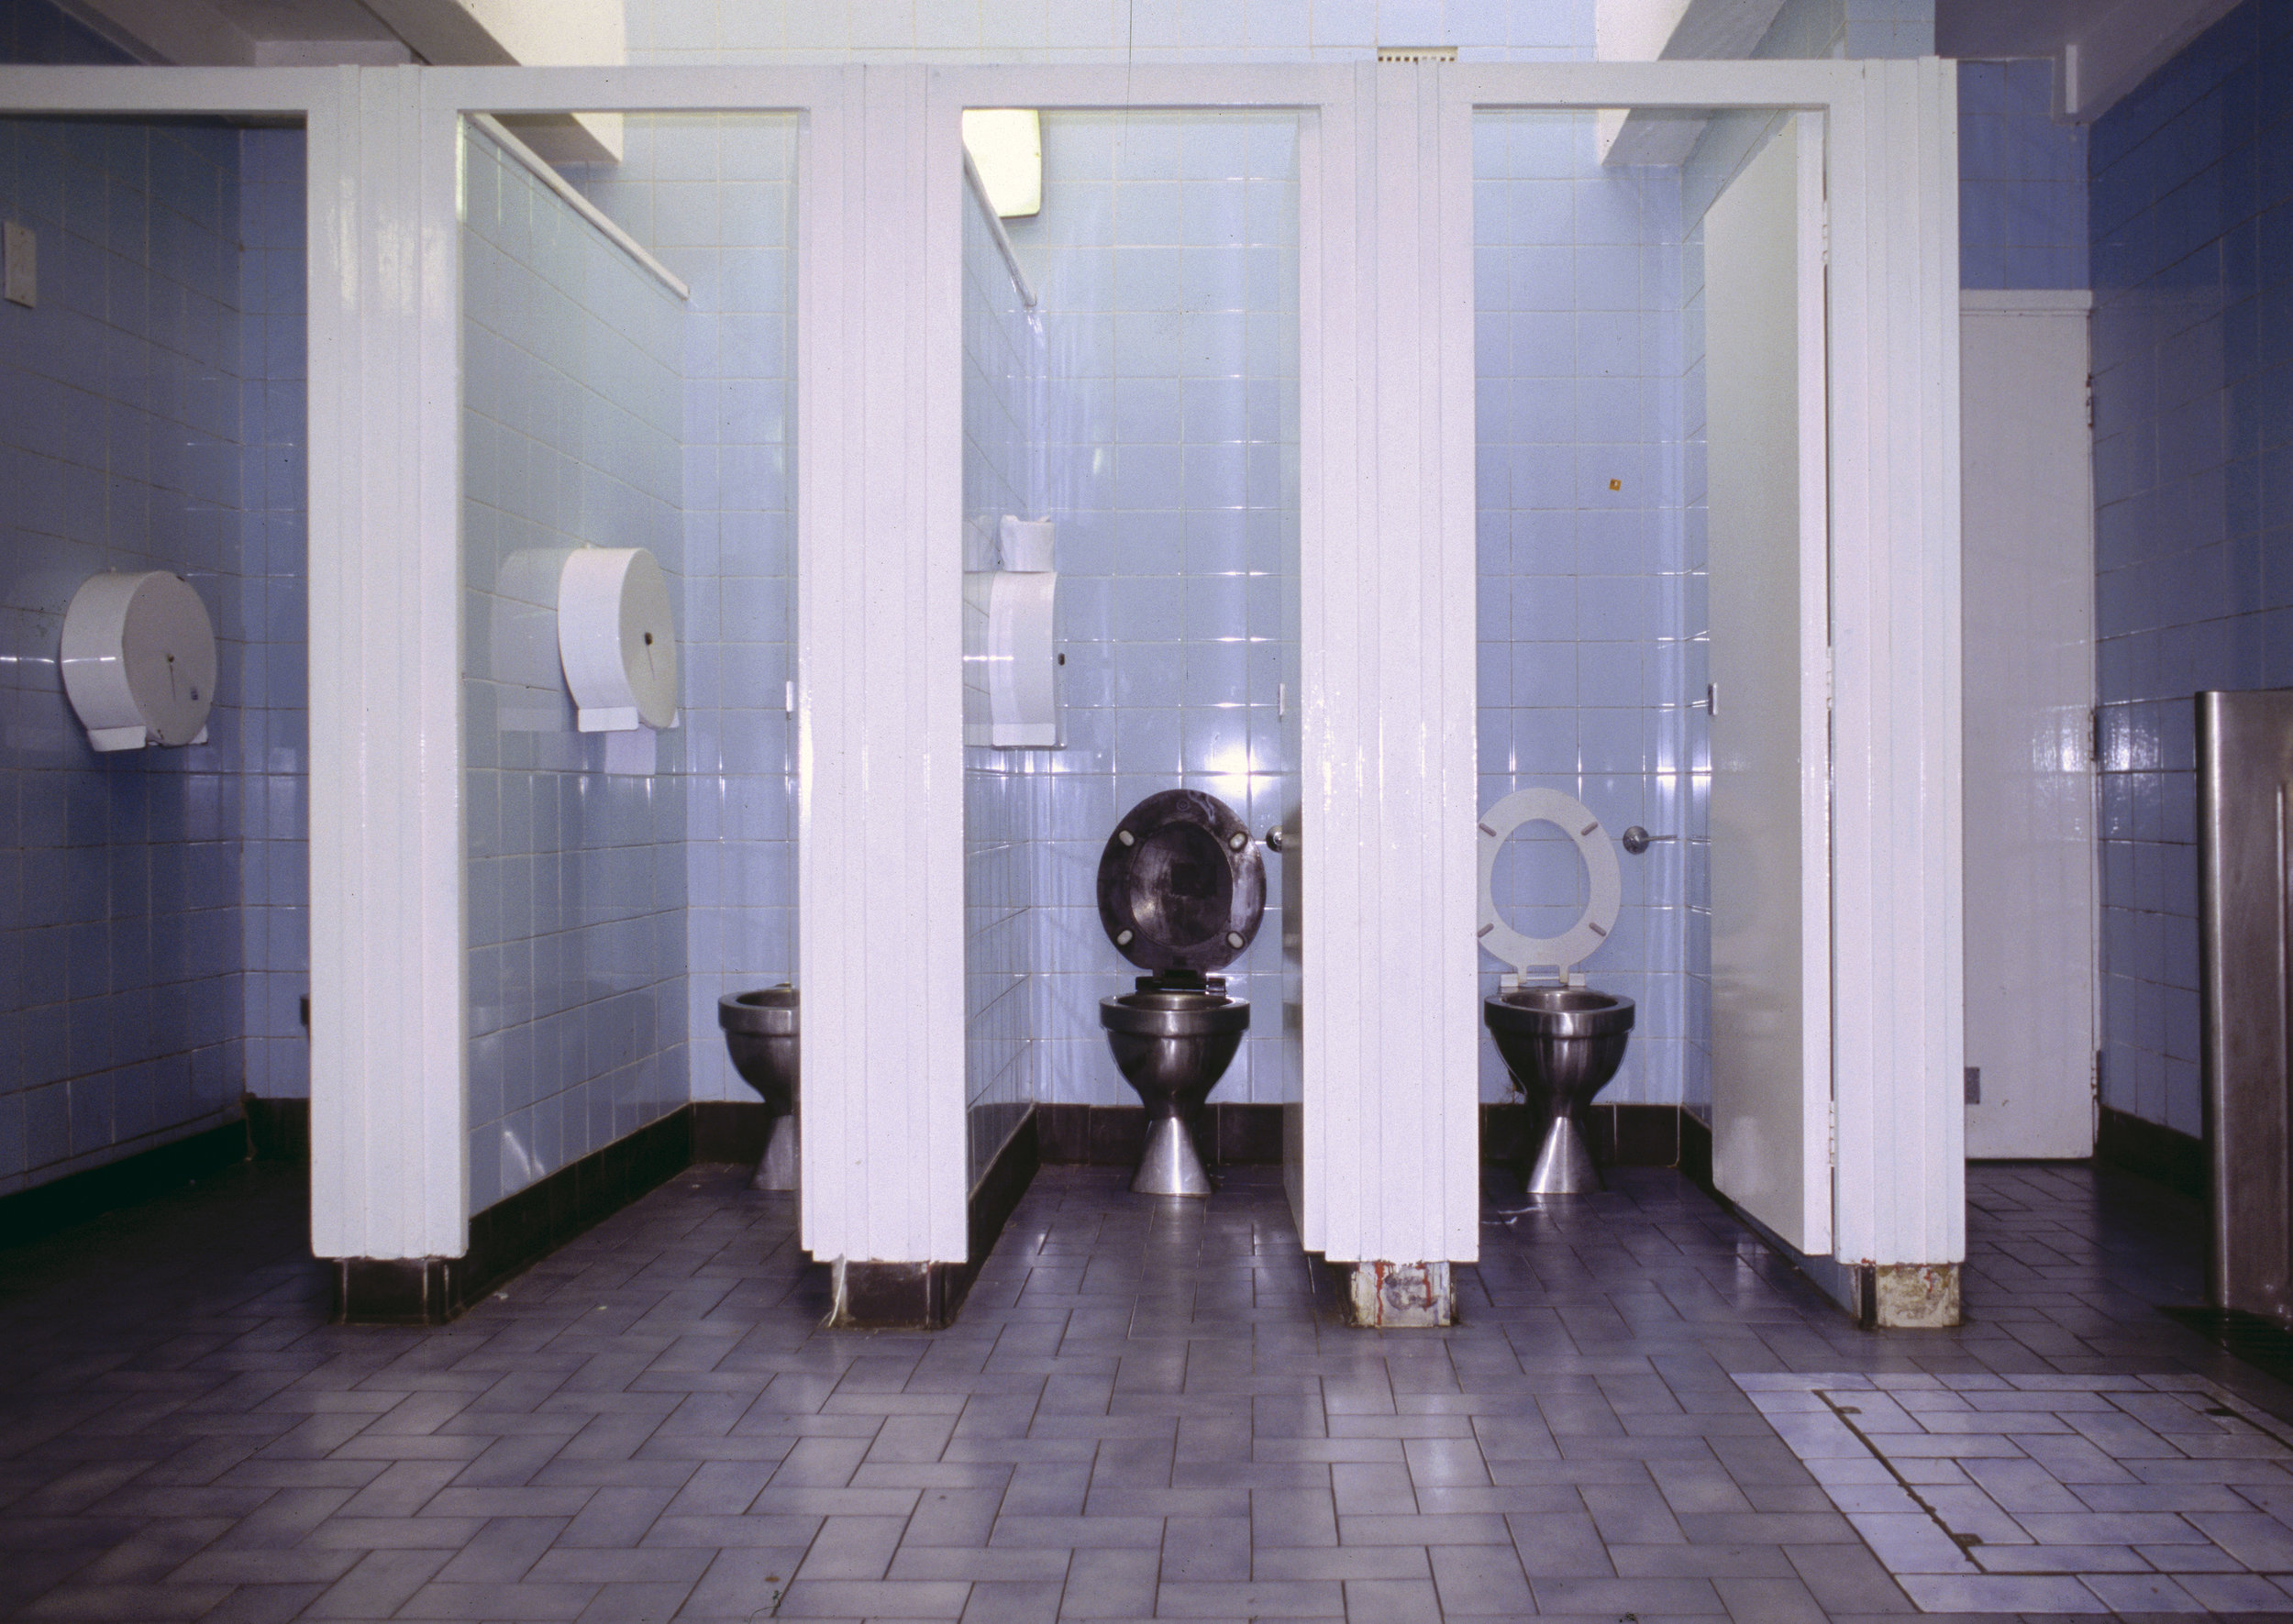 5.  Public Toilets , Ralph Dunn, 2006. Queer Spaces: London, 1980s - Today. Courtesy of the Whitechapel Gallery.